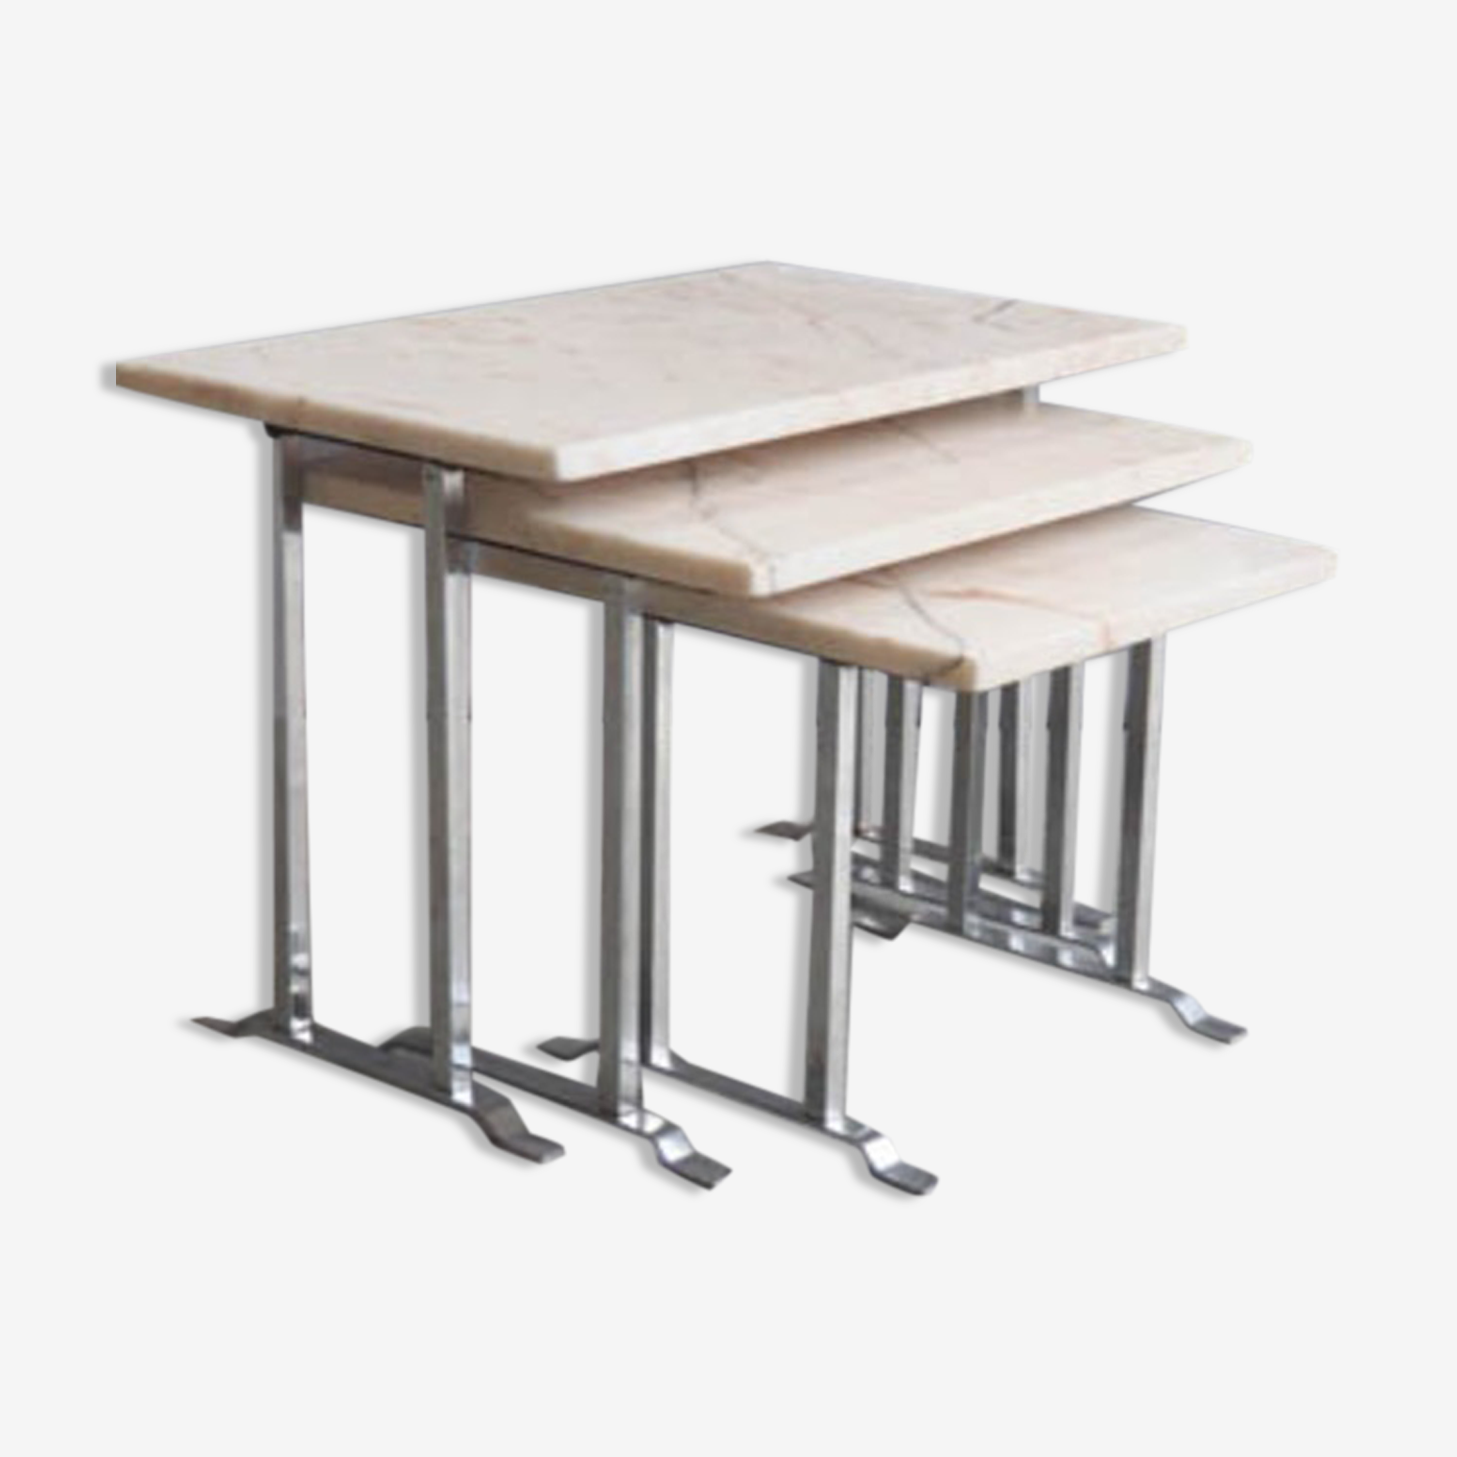 Ensemble de 3 tables gigognes